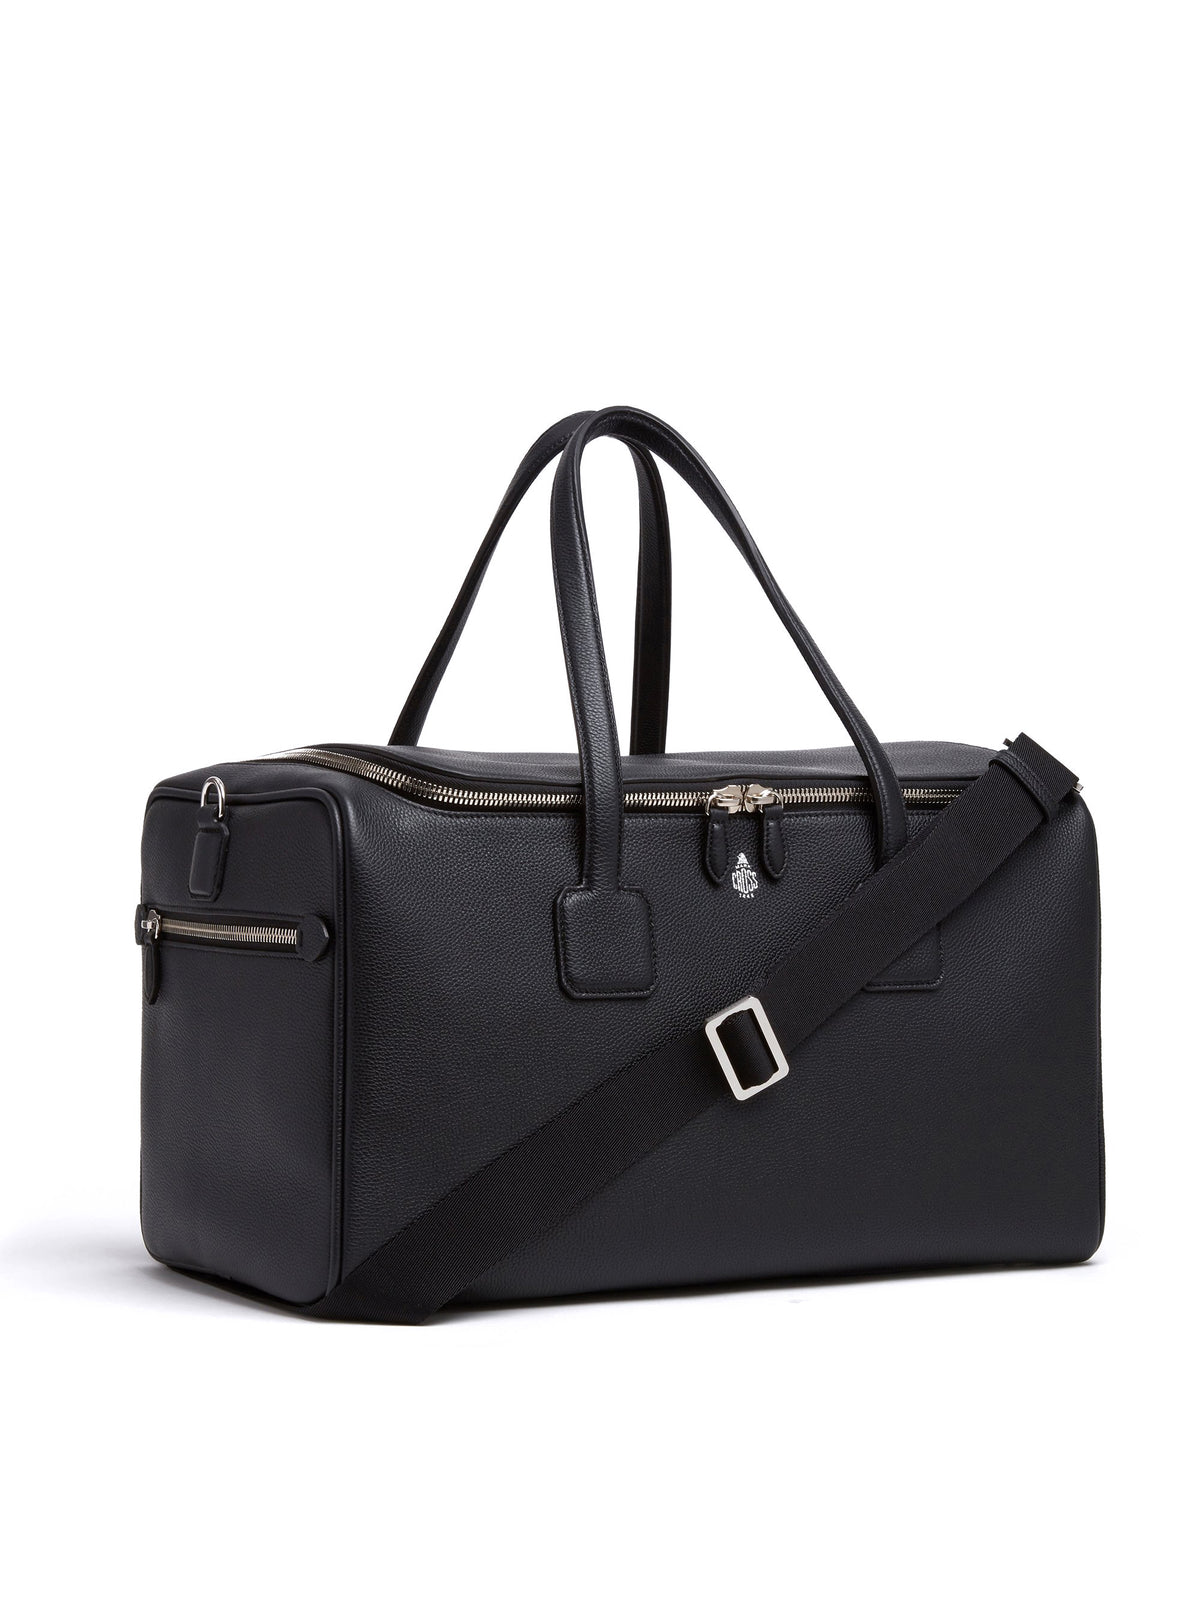 Mark Cross Henry Leather Sports Duffle Bag Tumbled Grain Black Side